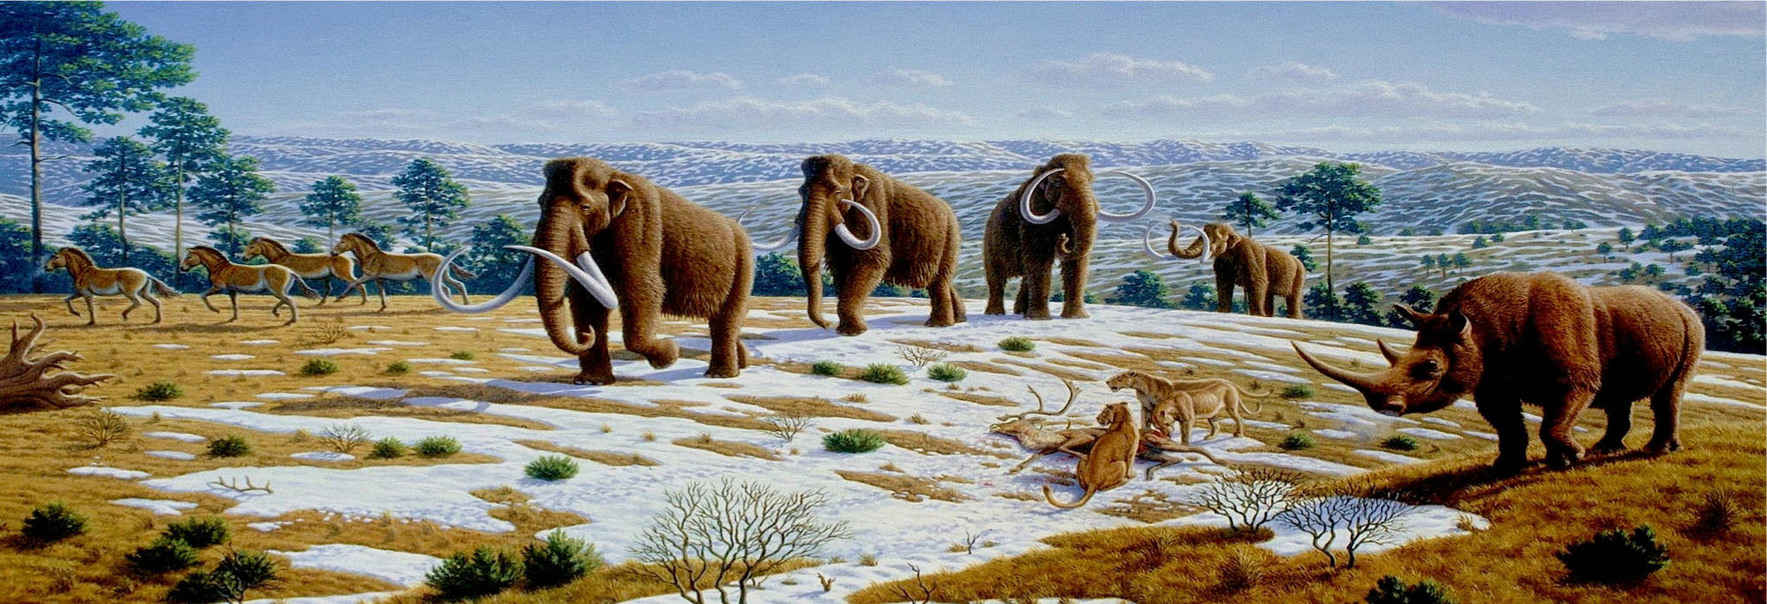 The book WOOLLY tells how the first steps have been taken to restore woolly mammoths to life and to the northern wild. image